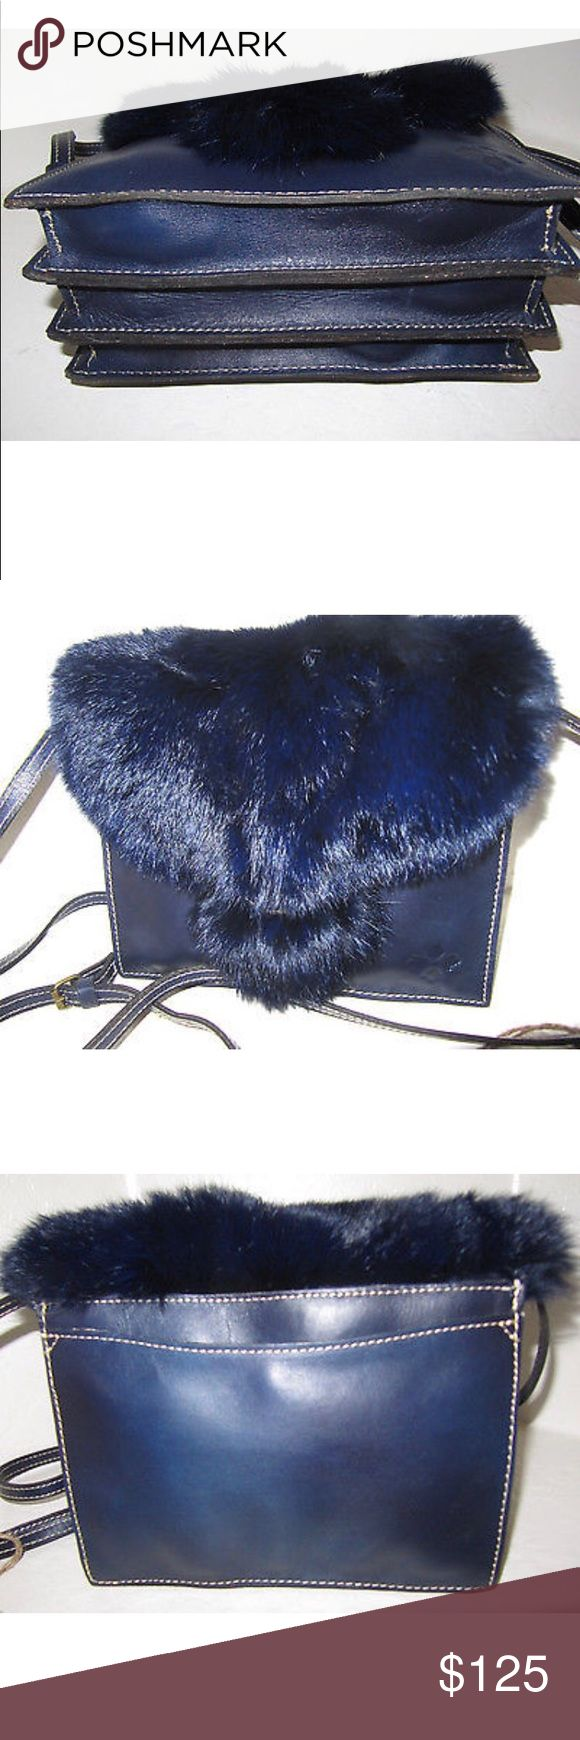 Patricia Nash Dark Navy Blue Crossbody Patrica Nash Van Sannino rabbit fur(Leather is SO soft & so is fur from regulated rabbits in Germany a Natural resource) crossbody clutch in eclipse dark navy blue.  Can be worn as large statement clutch or chic crossbody. This classic bag will make you feel like royalty! Purchased from major department store, never used. Smoke free home. Comes with dustbag. Accordion-style with 3 compartment layout Patricia Nash Bags Crossbody Bags